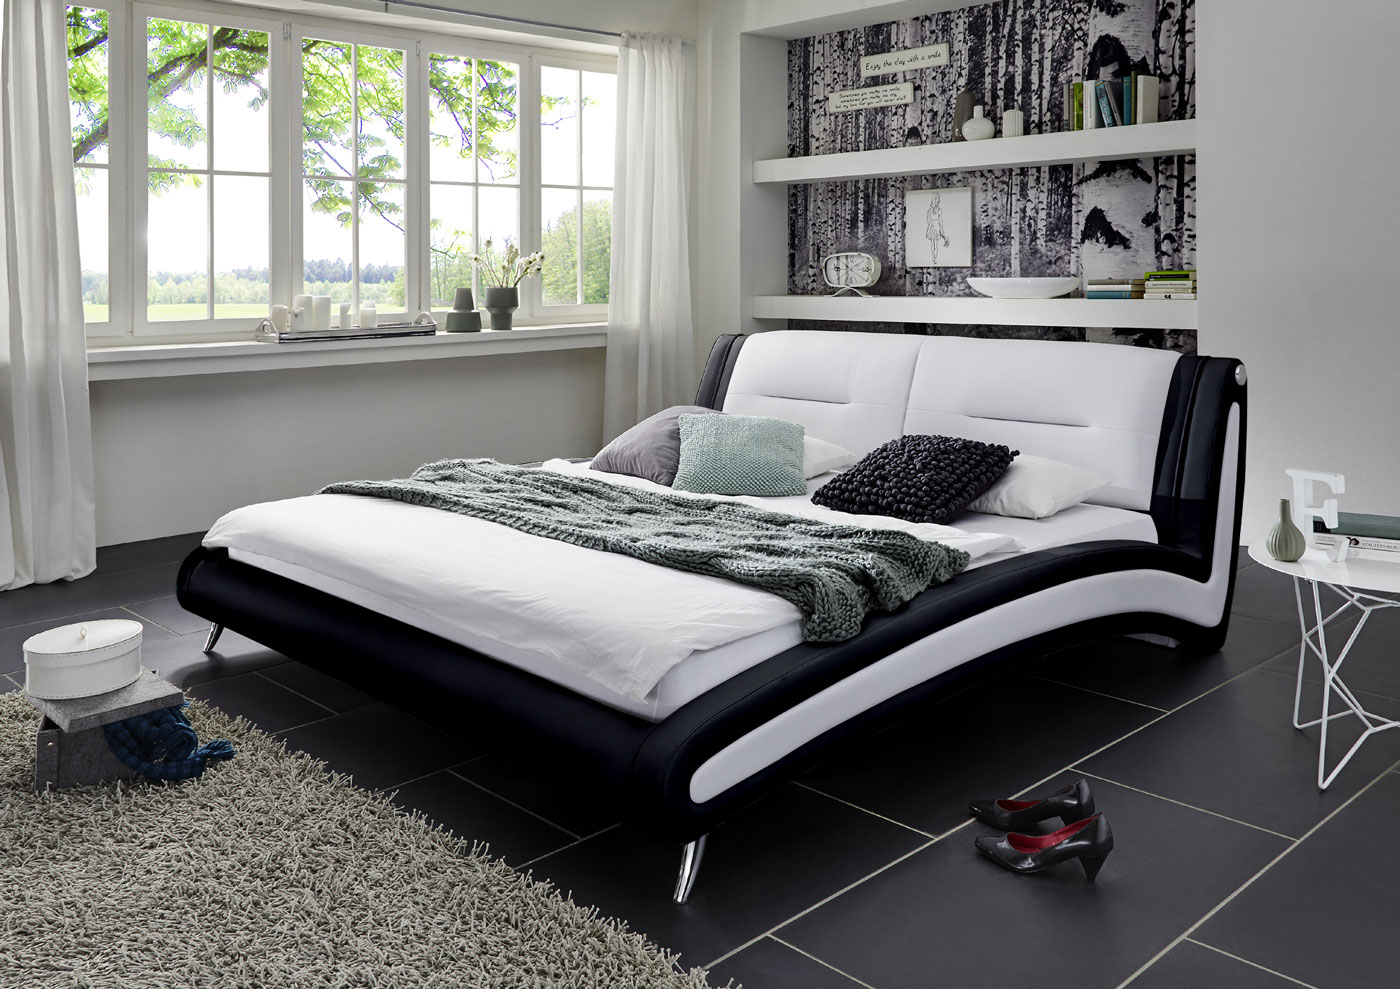 sam design bett 160 x 200 cm wei schwarz swing. Black Bedroom Furniture Sets. Home Design Ideas